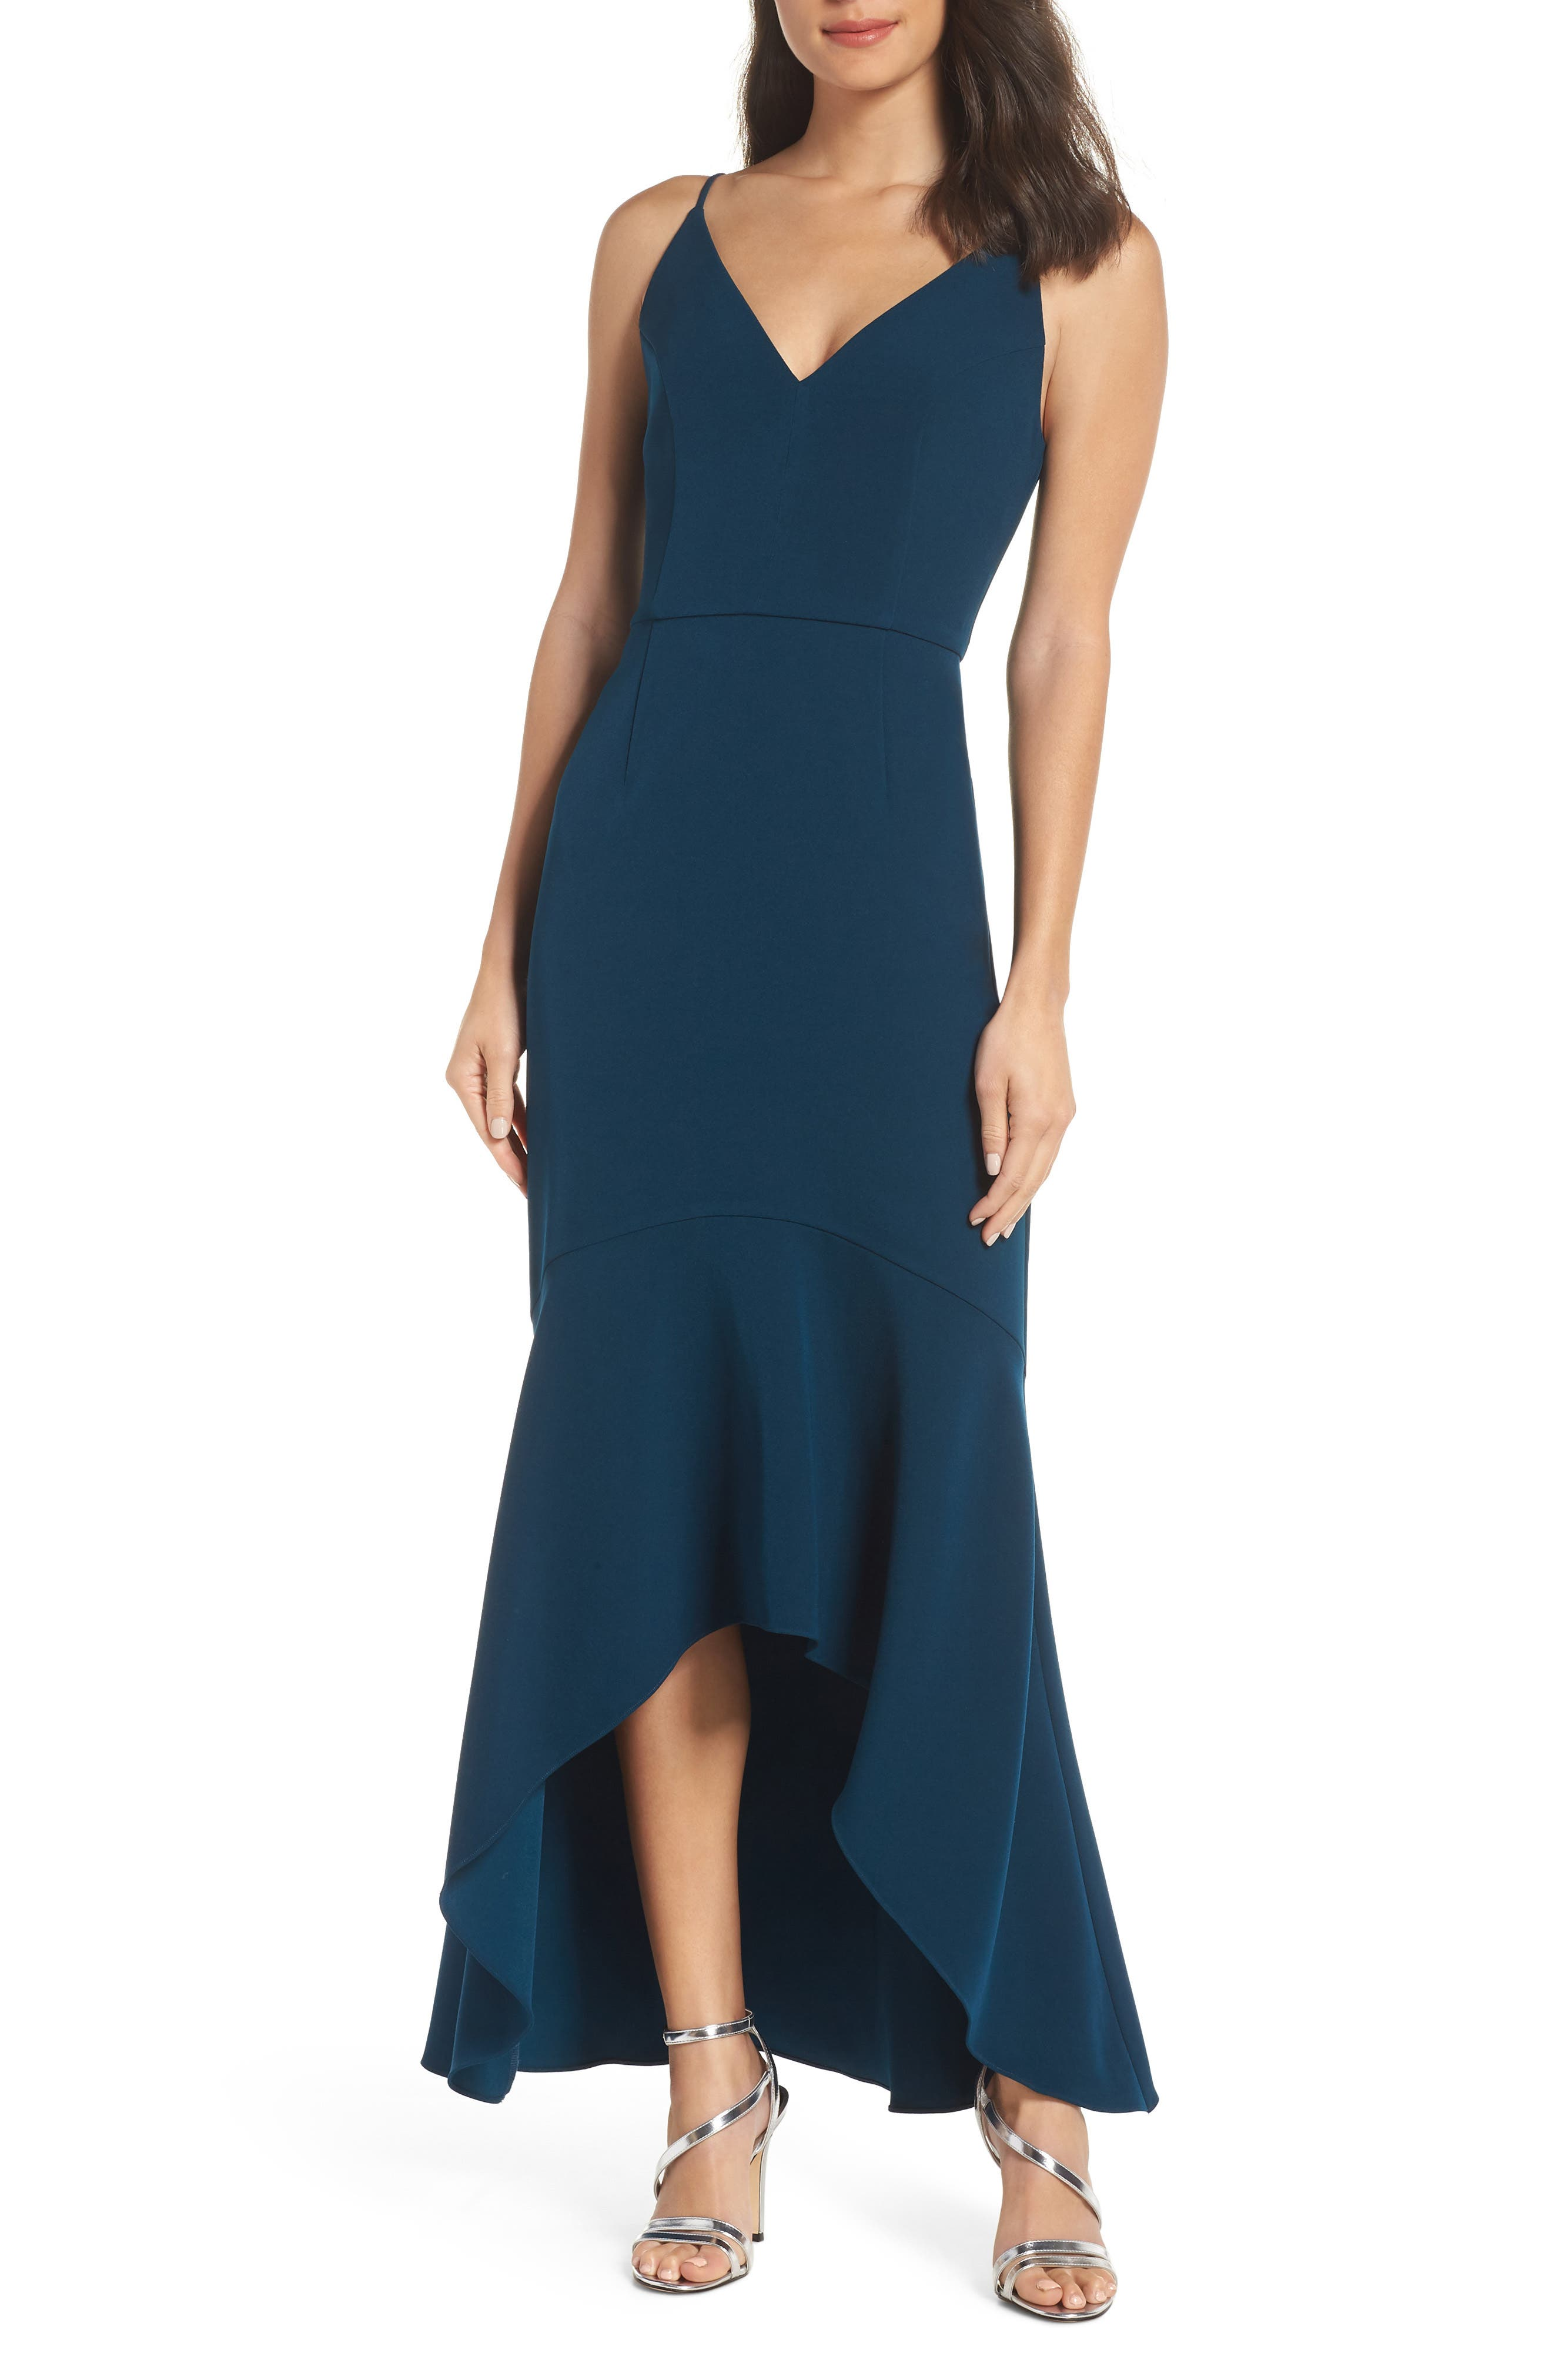 HARLYN High/Low Gown in Teal